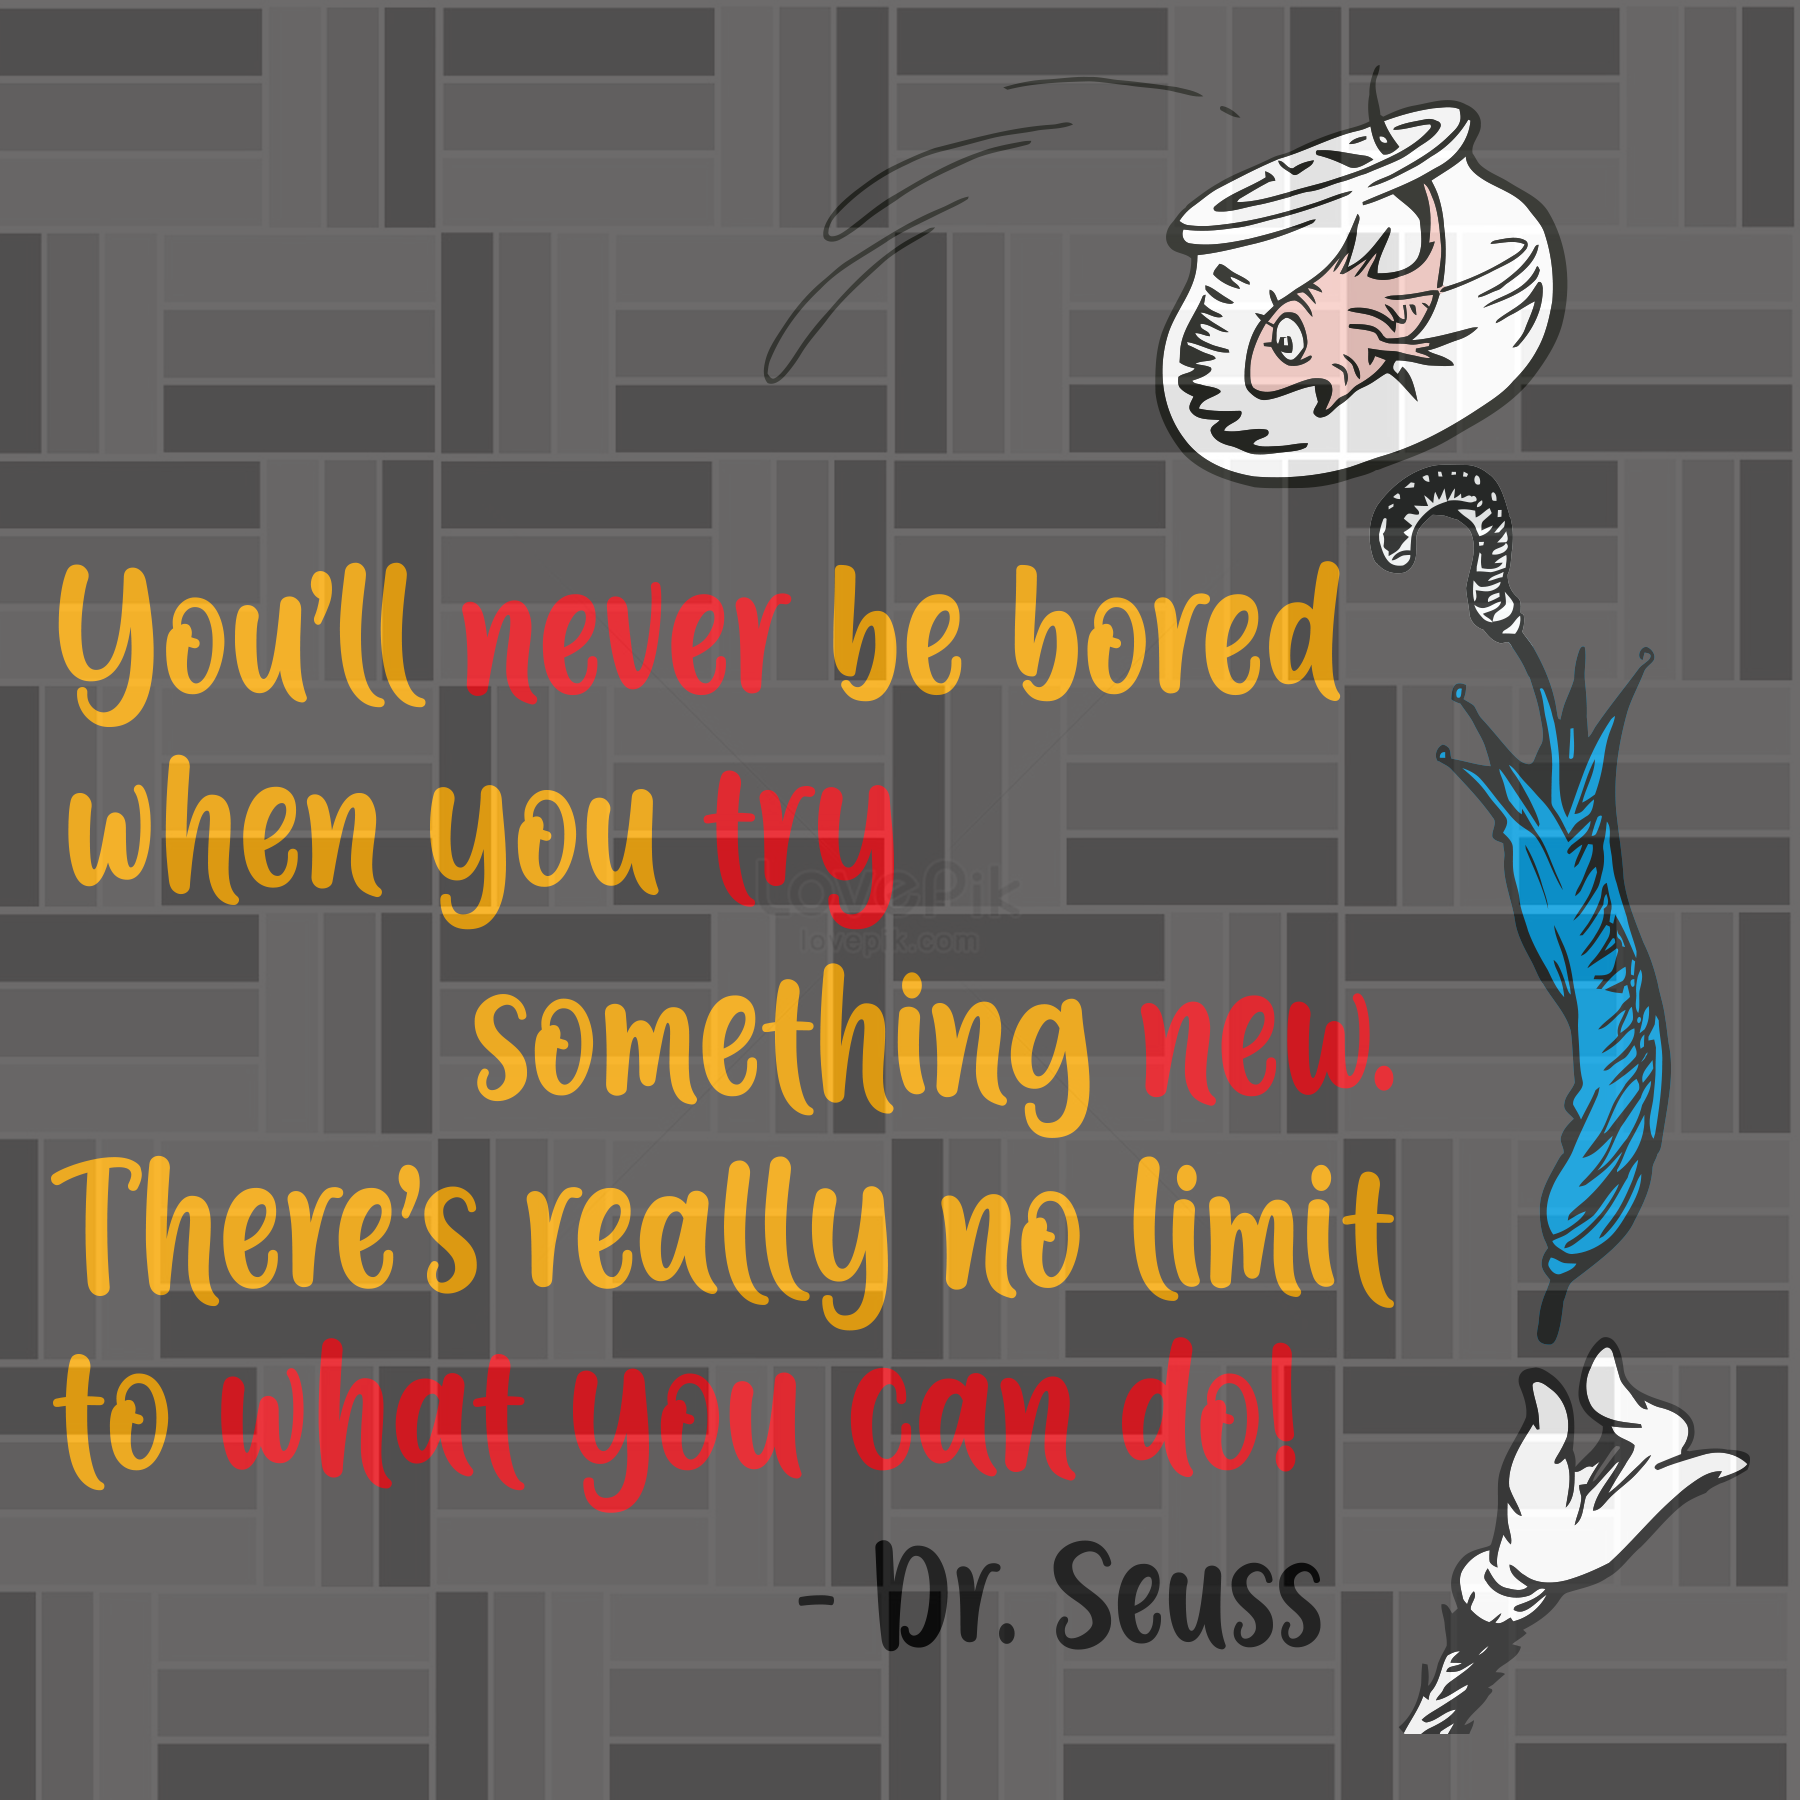 YOU'LL NEVER BE BORED - DR SEUSS svg, dr seuss svg, dr seuss quotes, SVG Files, SVG Files For Cricut, Digital Files.